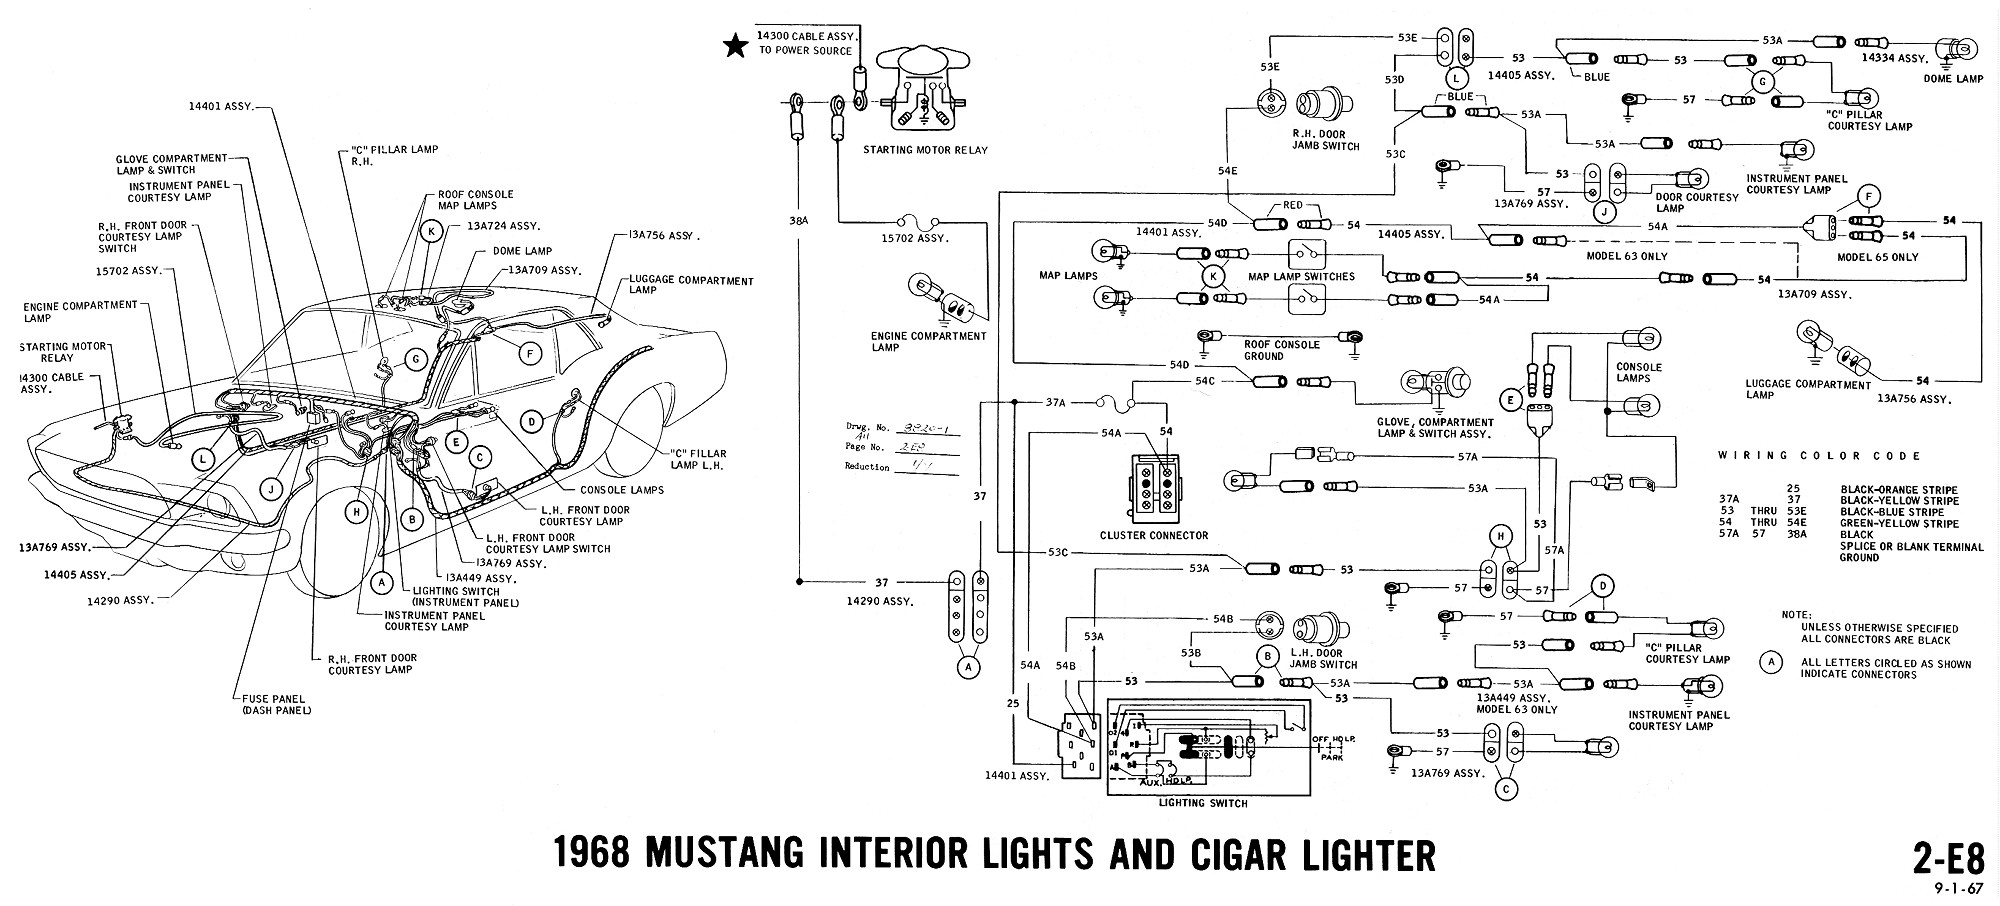 1968 mustang wiring diagram interior lights cigar lighter 1968 mustang wiring diagram 1966 mustang wiring diagrams \u2022 free 1967 mustang ignition wiring diagram at bayanpartner.co